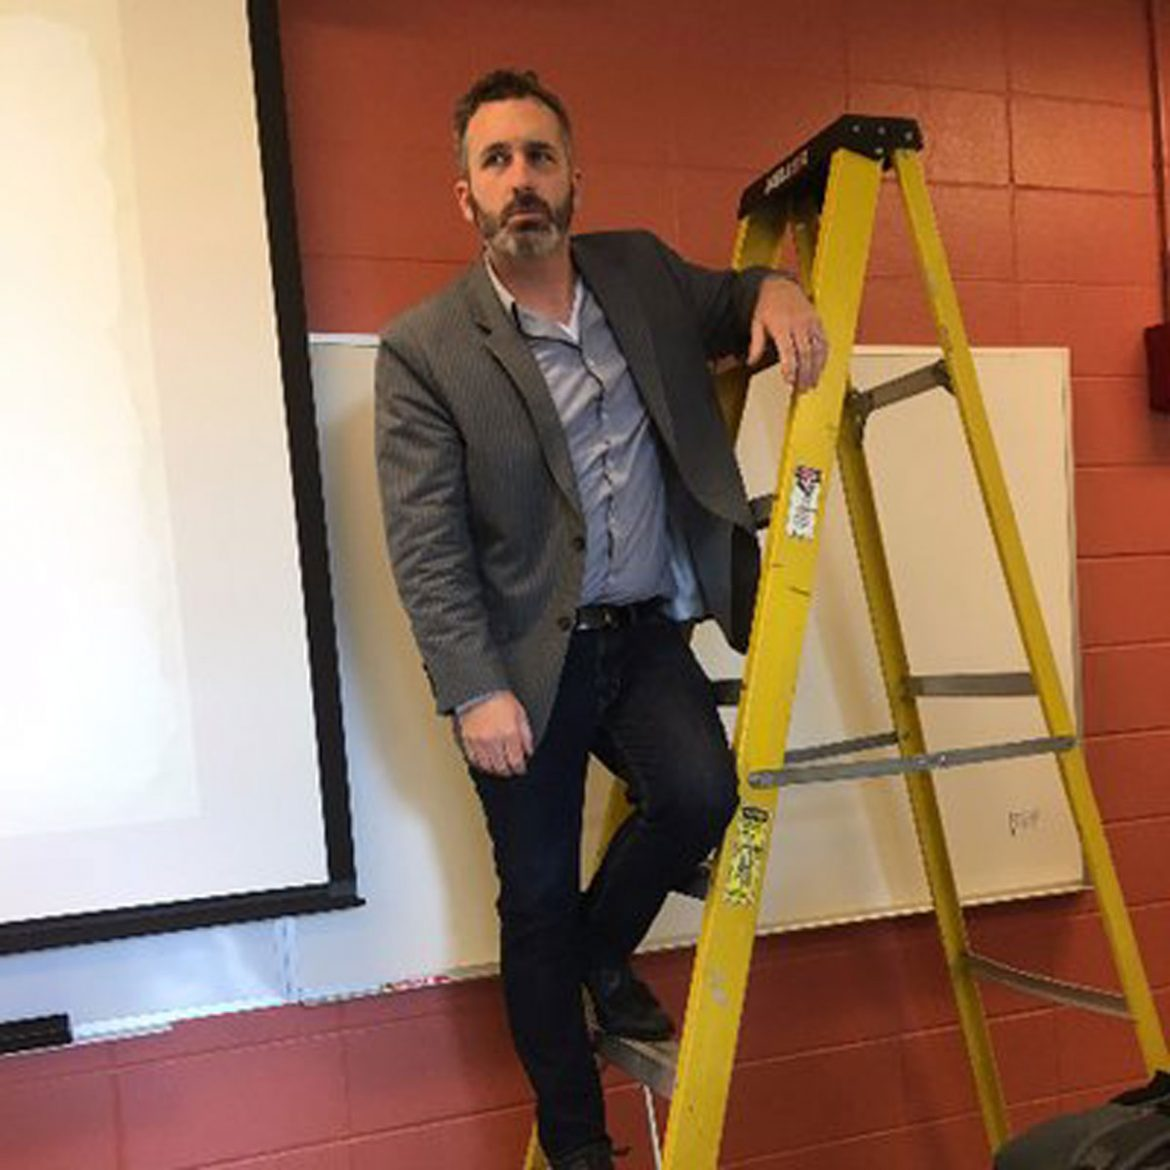 Portrait of Ben Sawyer, professor of History at MTSU, being funny by standing on a ladder in a classroom.